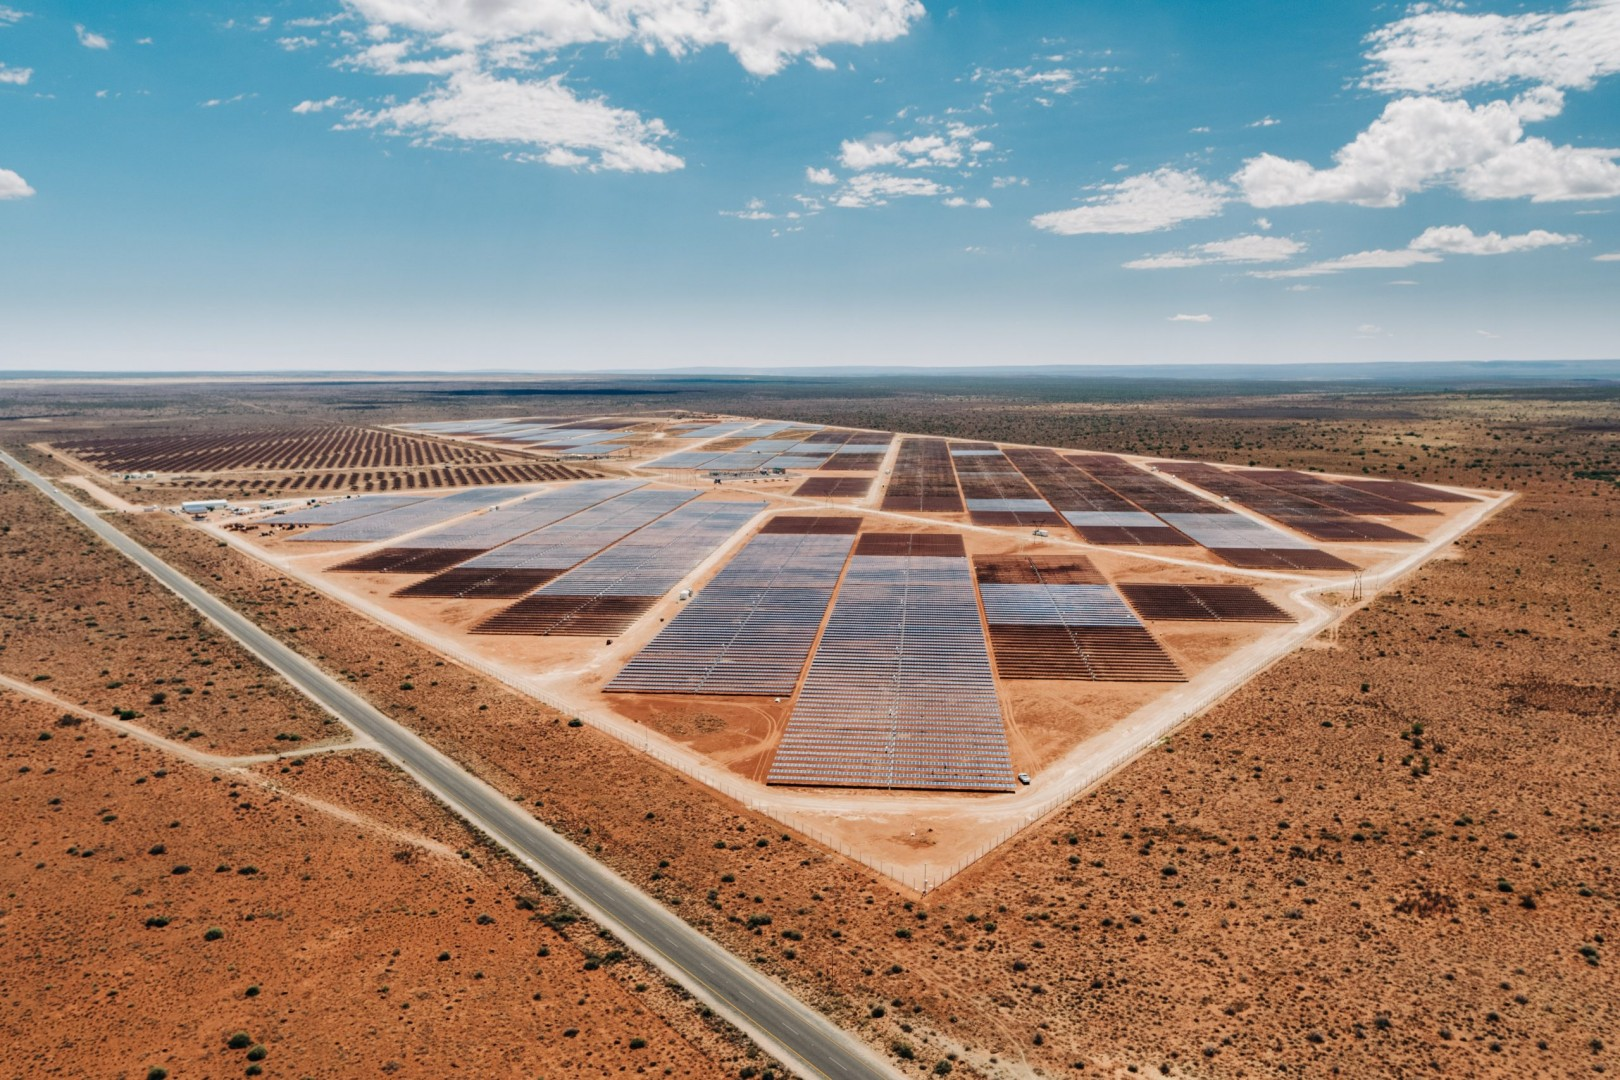 The Greefspan solar farm in South Africa, completed by Gransolar last year. Image: Gransolar Group.